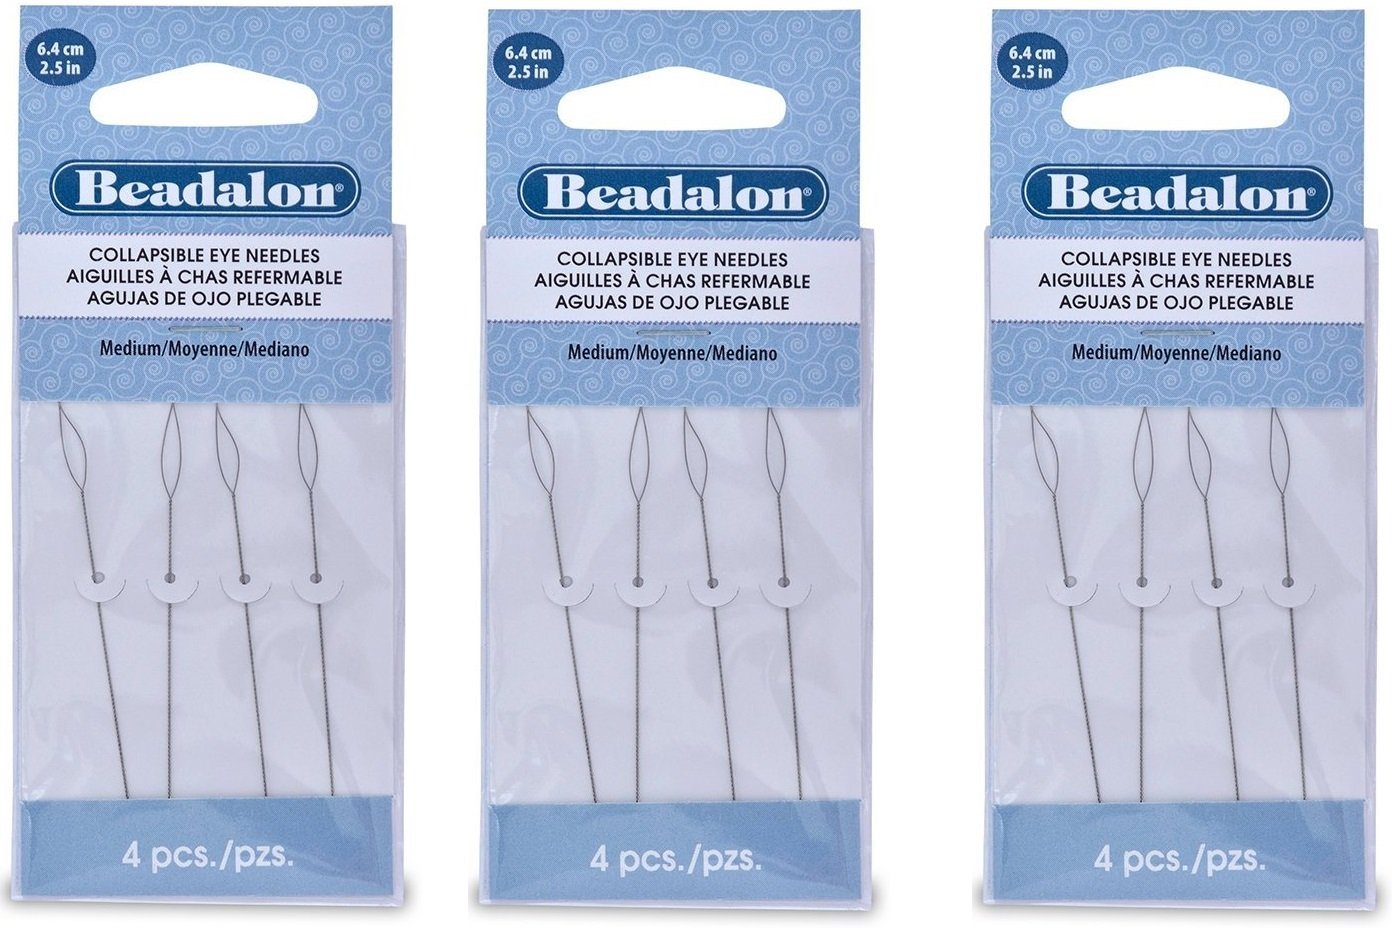 Beadalon Collapsible Eye Needles 2.5-Inch Medium (3 Pack) by Artistic Wire